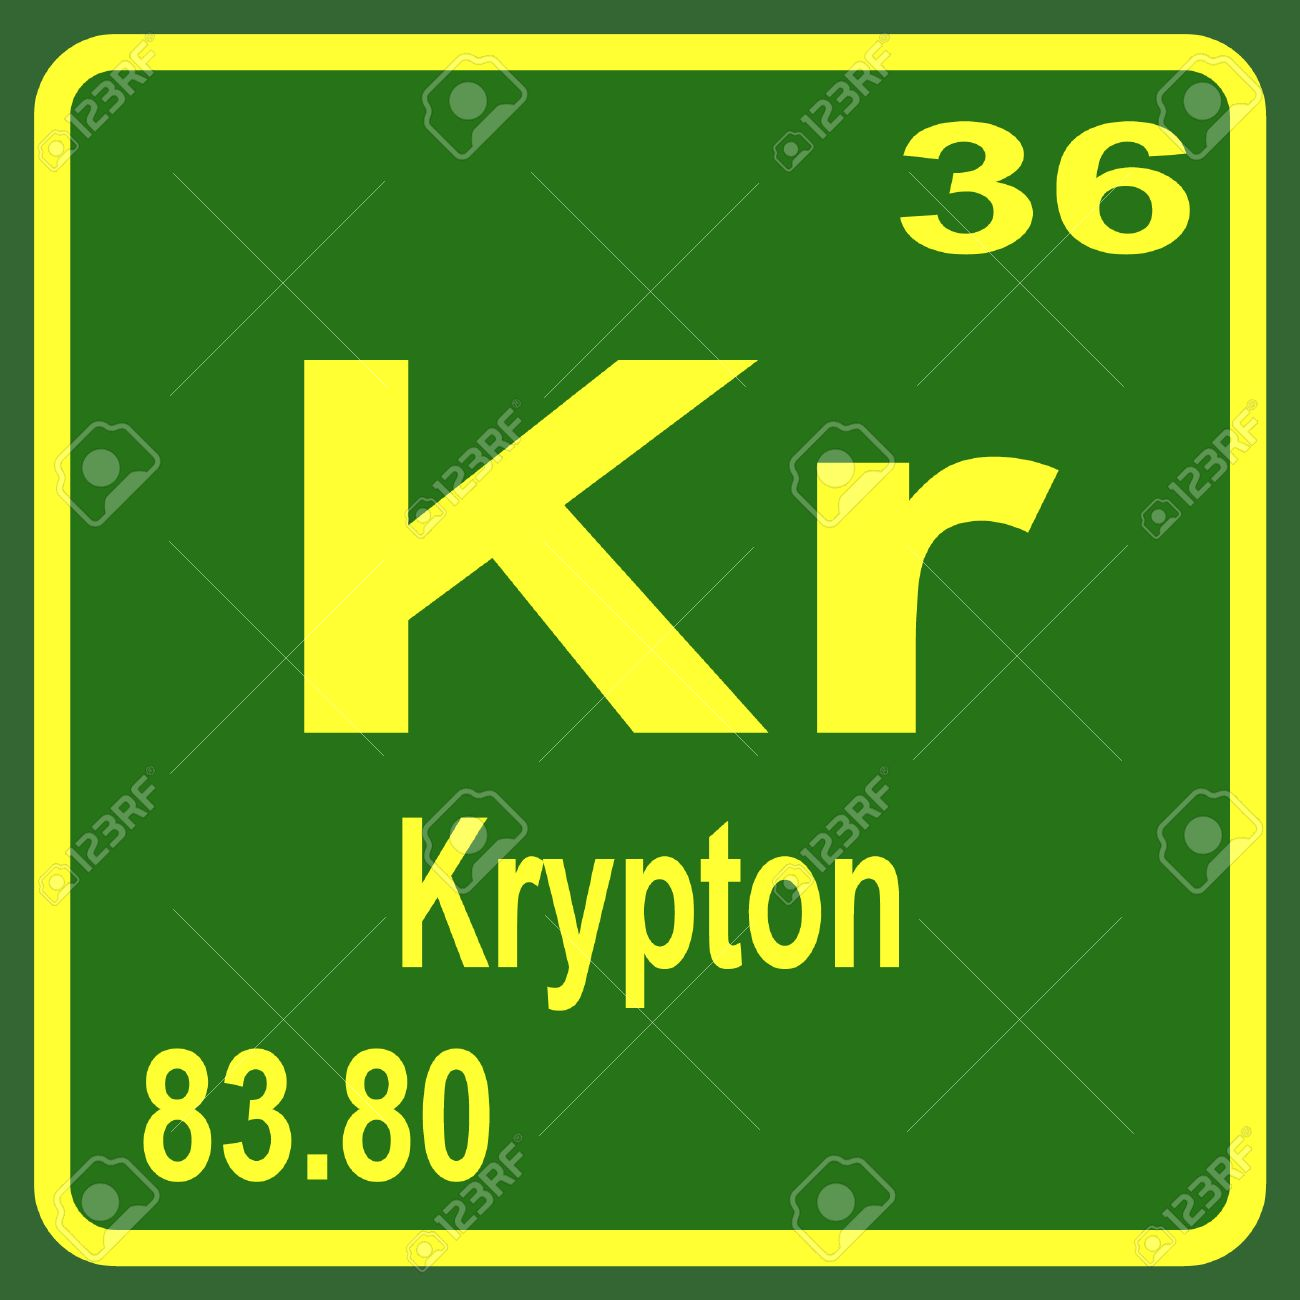 Periodic table of elements krypton royalty free cliparts vectors periodic table of elements krypton stock vector 53900424 urtaz